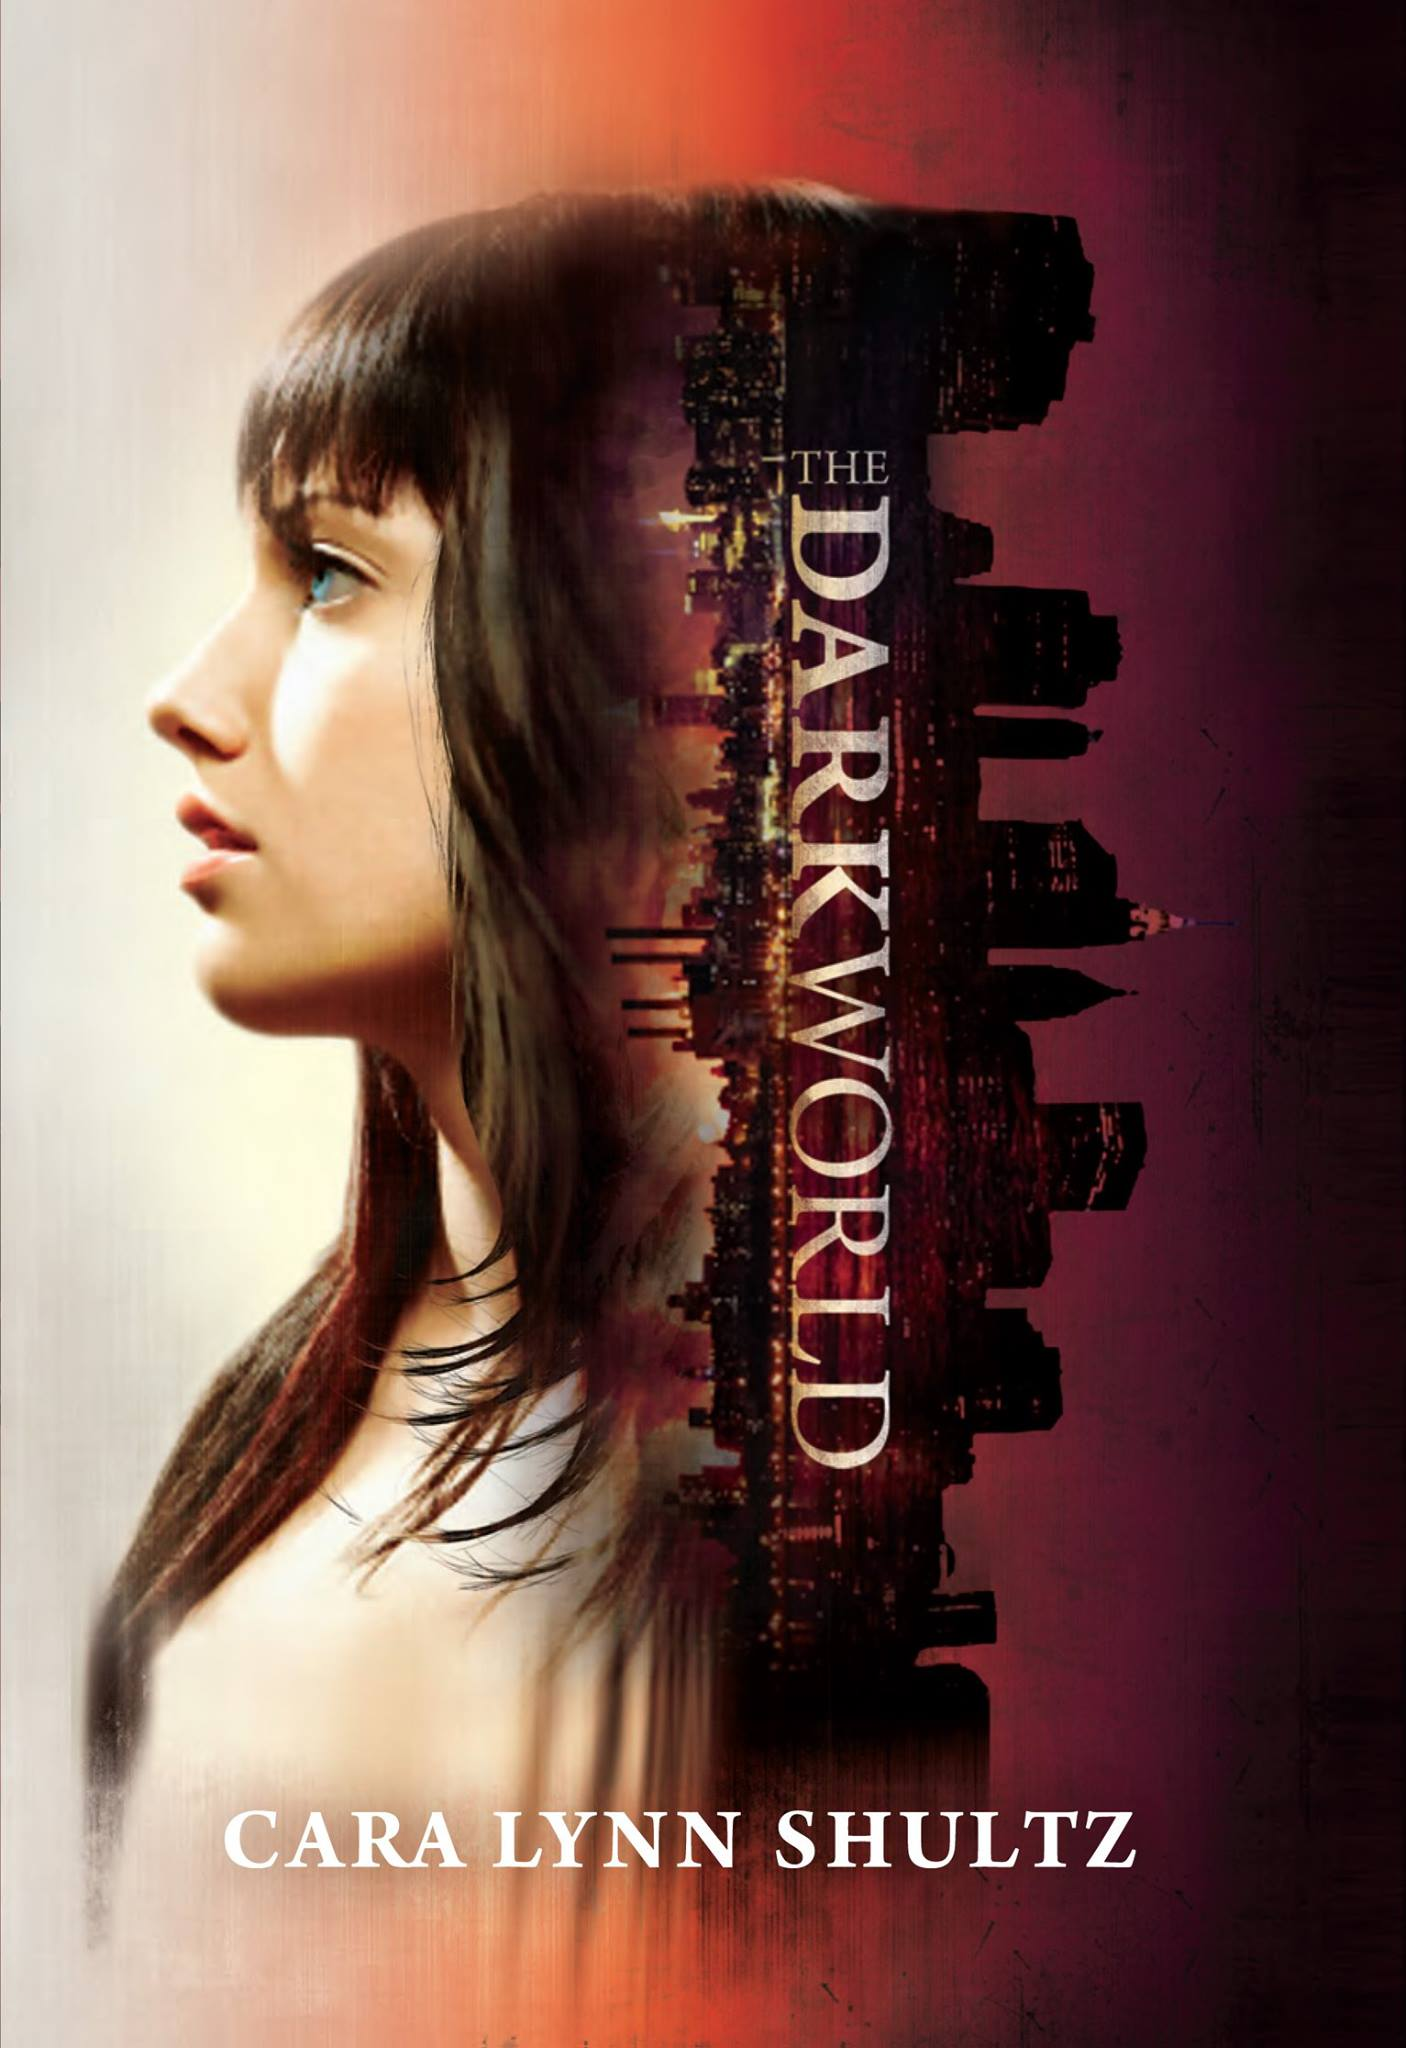 The Dark World (Dark World #1) by Cara Lynn Shultz